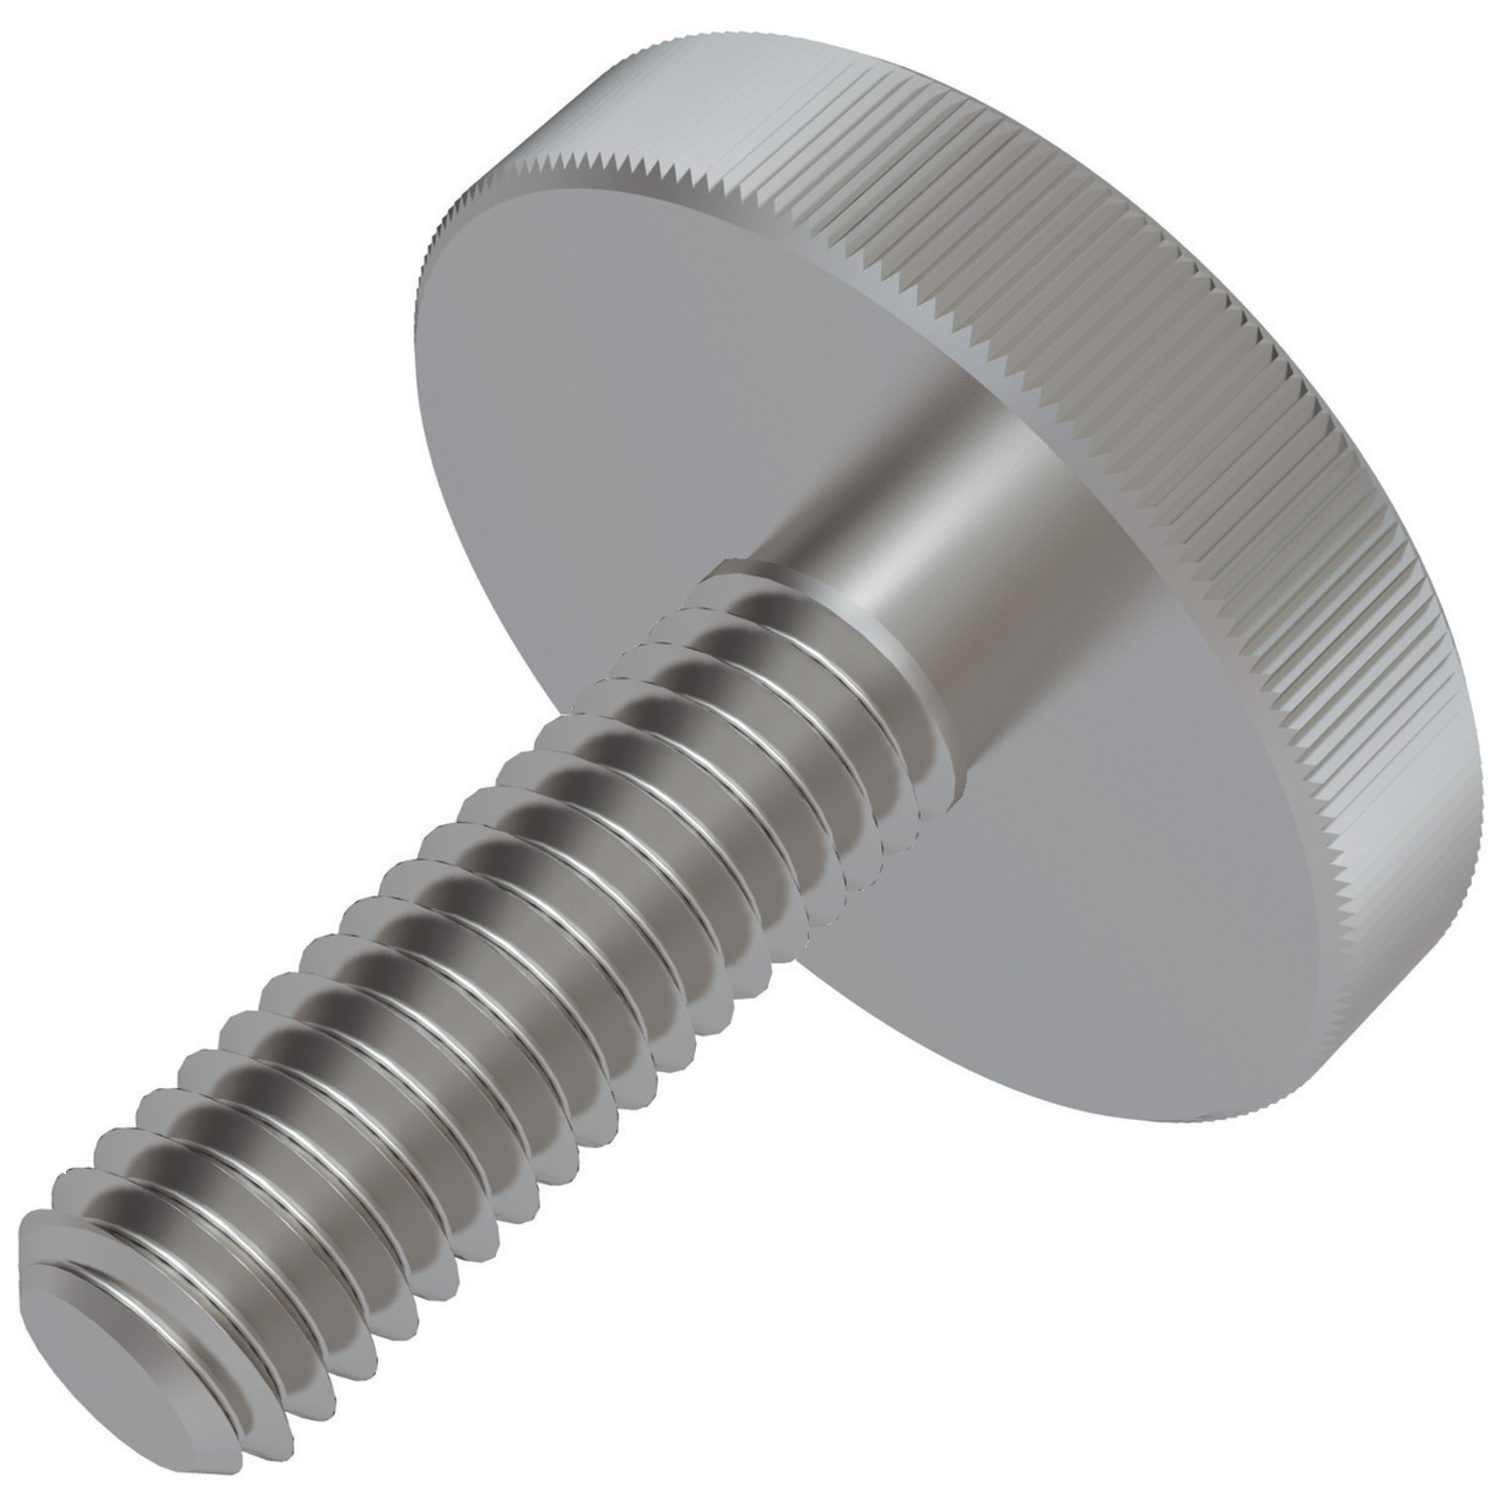 Flat Knurled Thumb Screws- Stainless